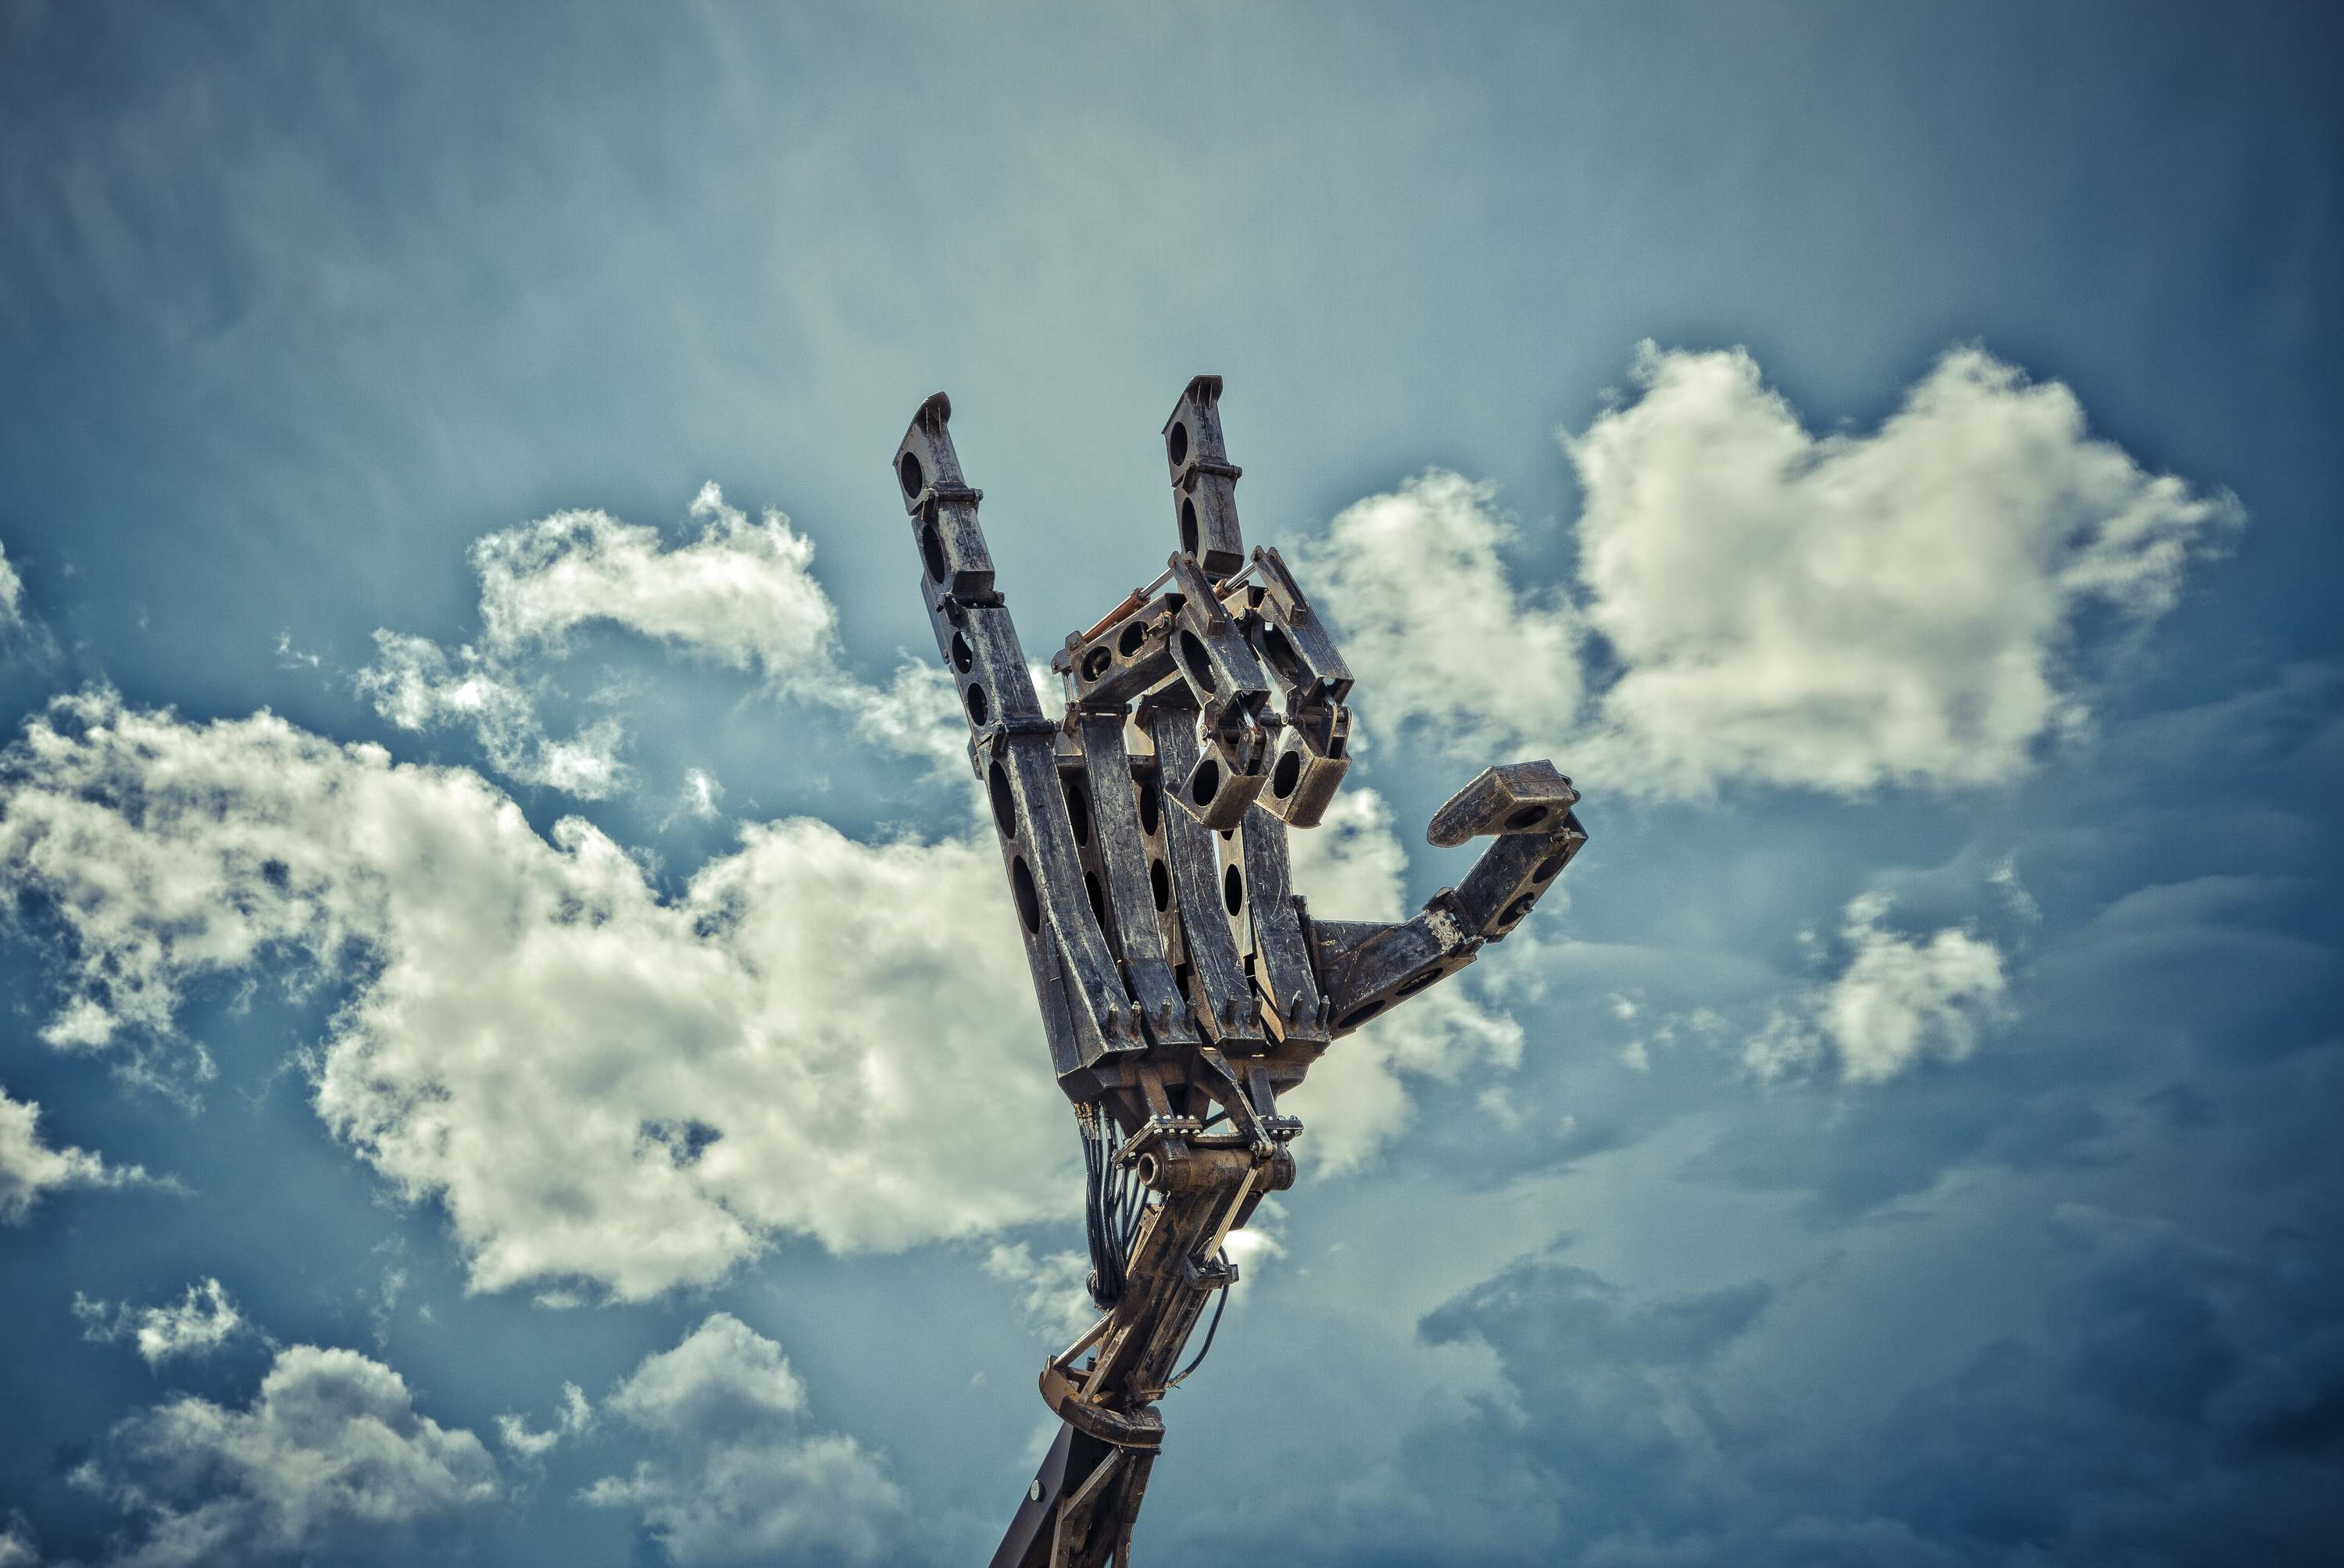 Christian Ristow: The Hand of Man